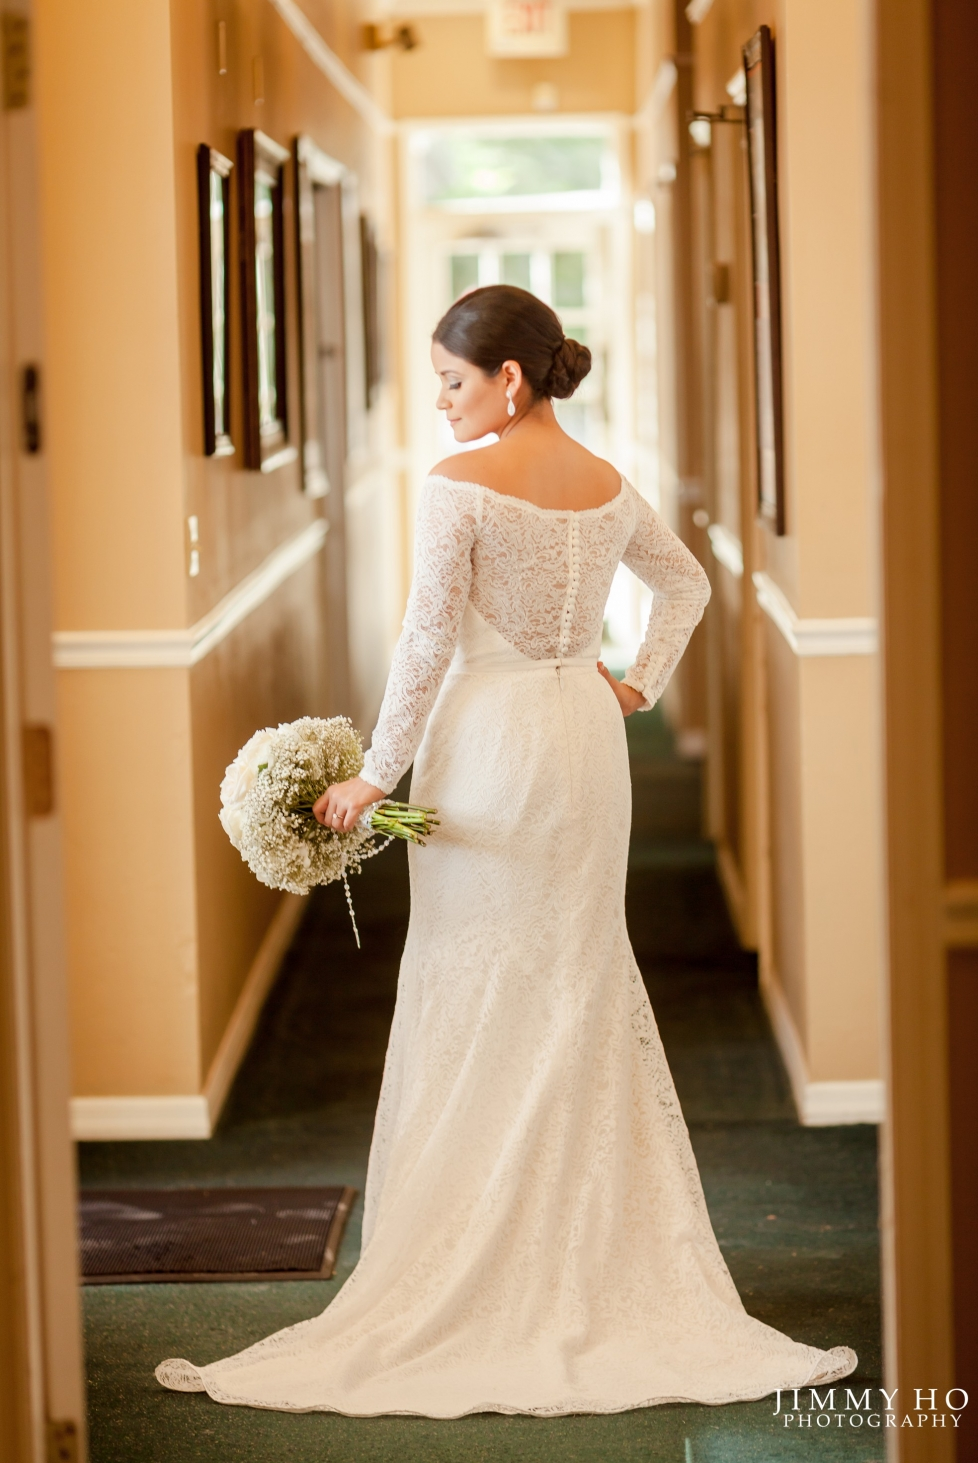 How To Preserve A Wedding Dress 88 Trend I had a great